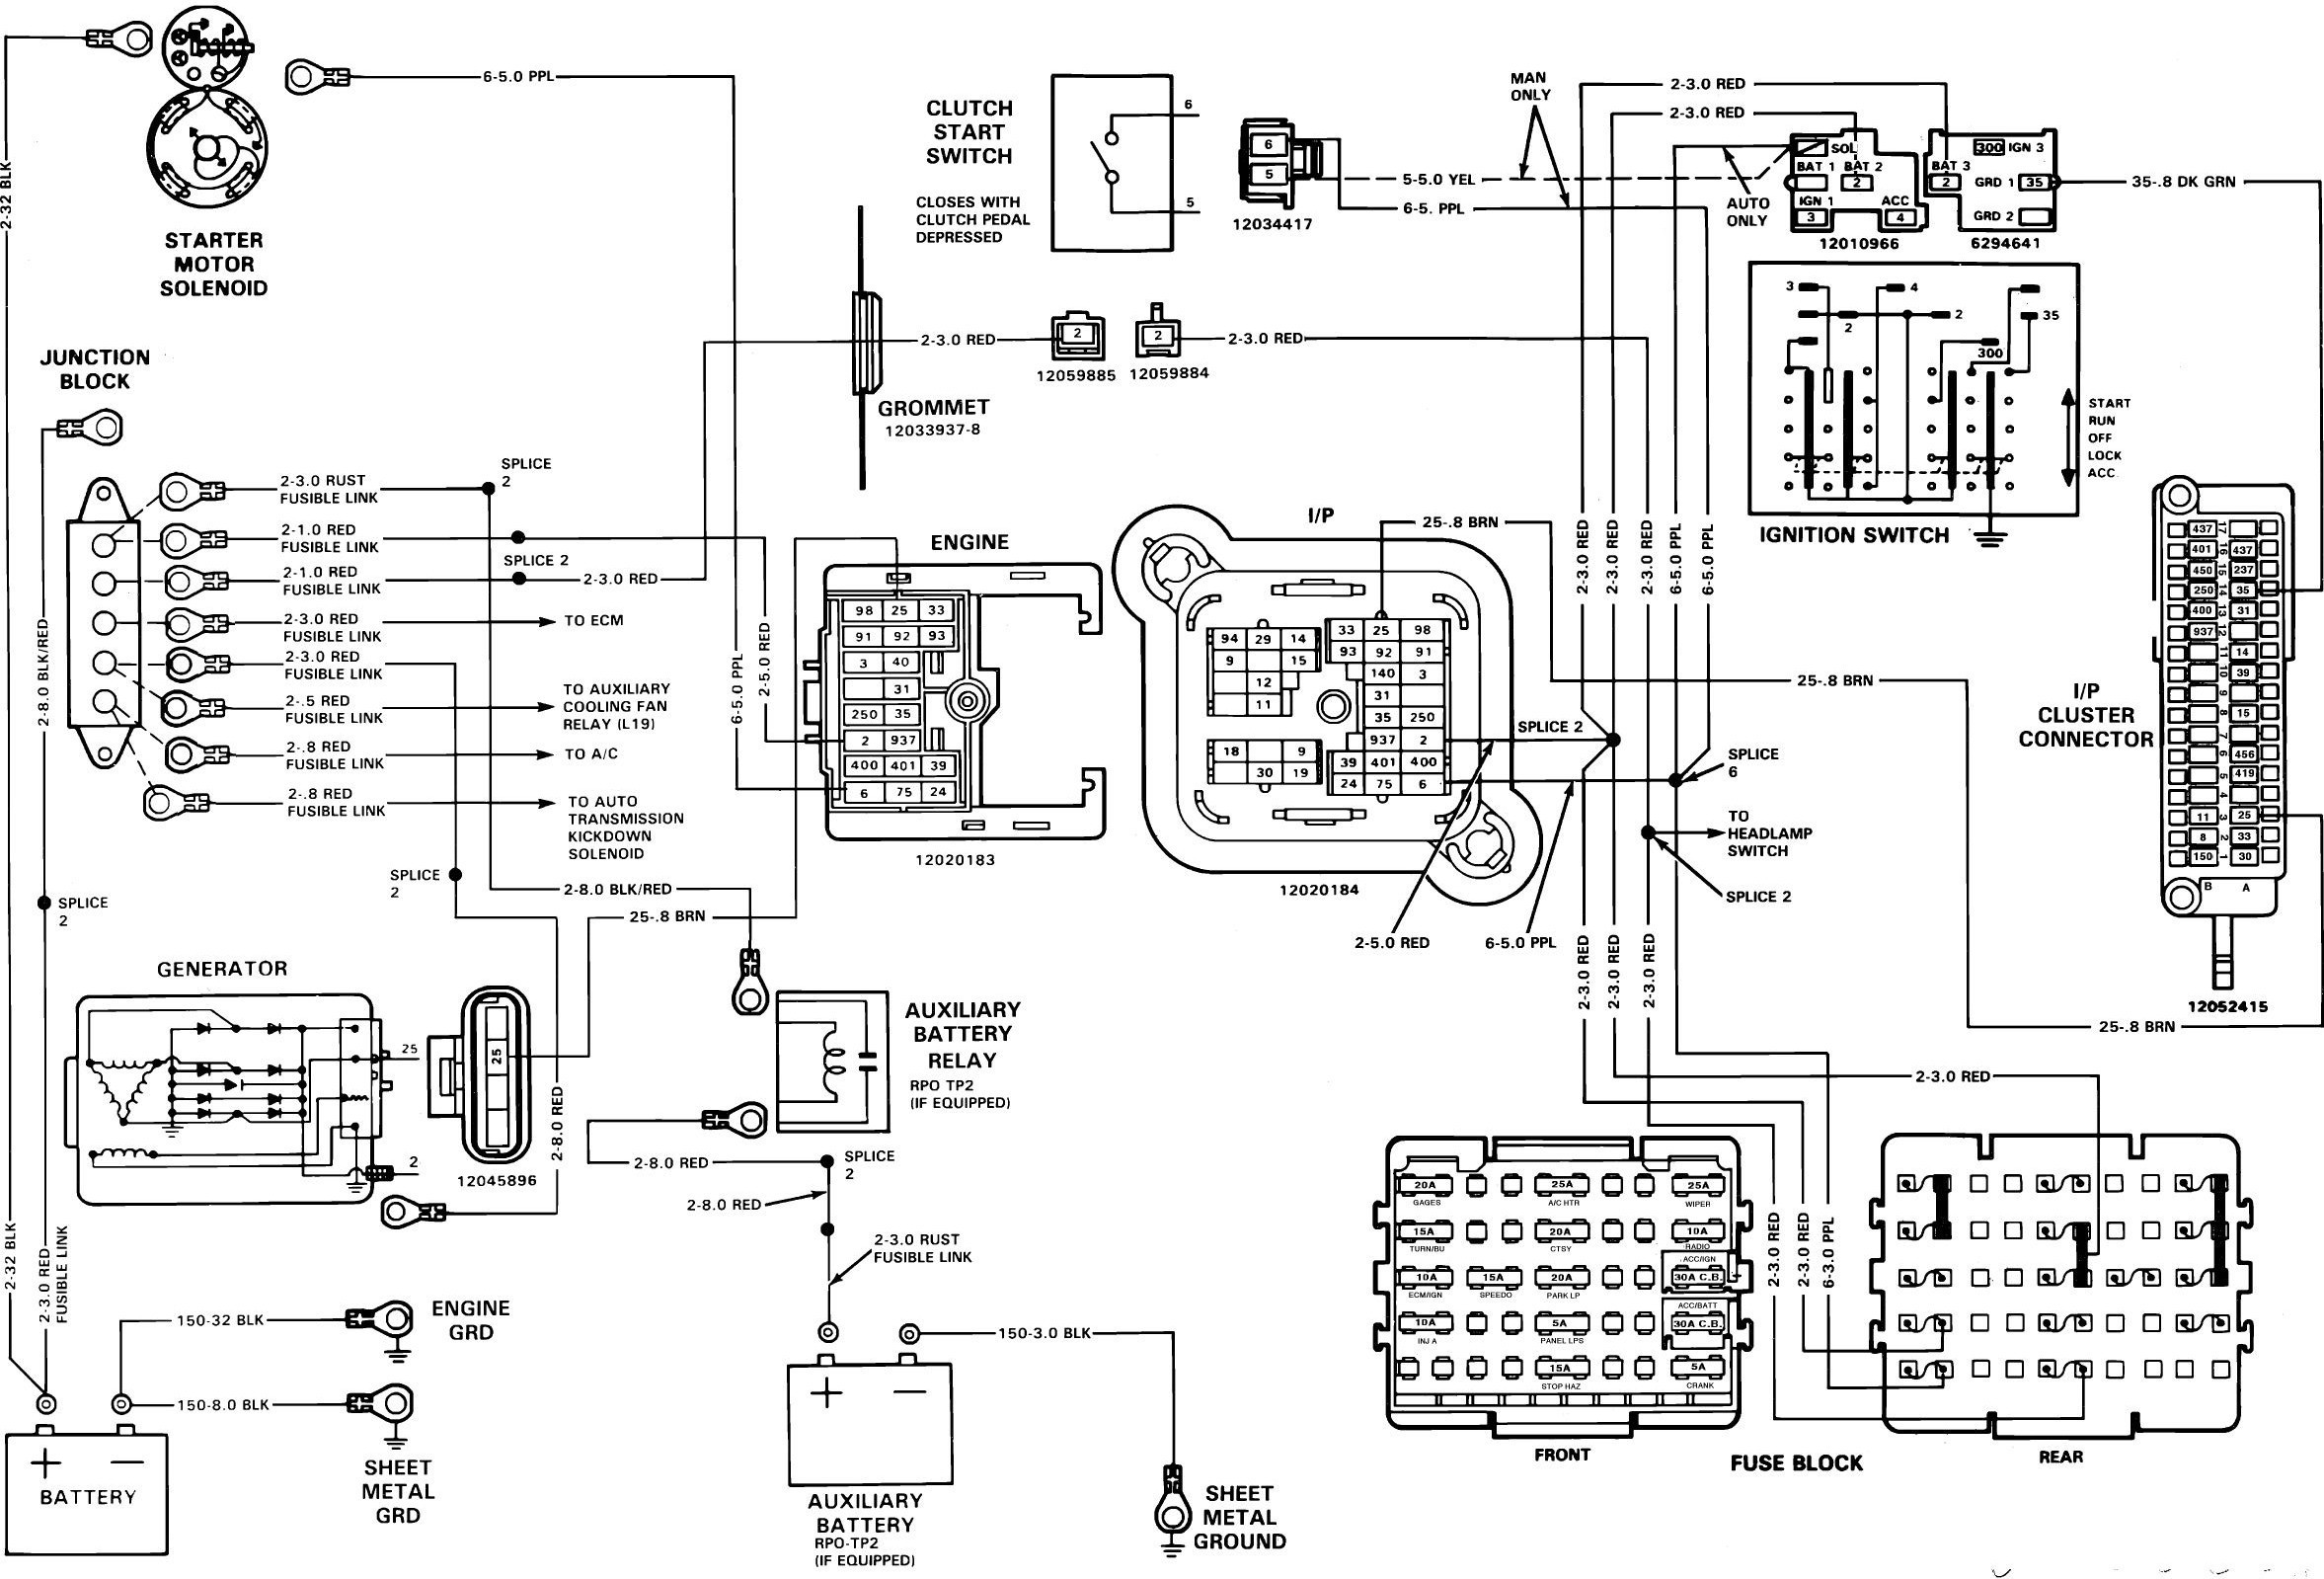 1989 Chevrolet Silverado Fuse Diagram | Wiring Diagram on